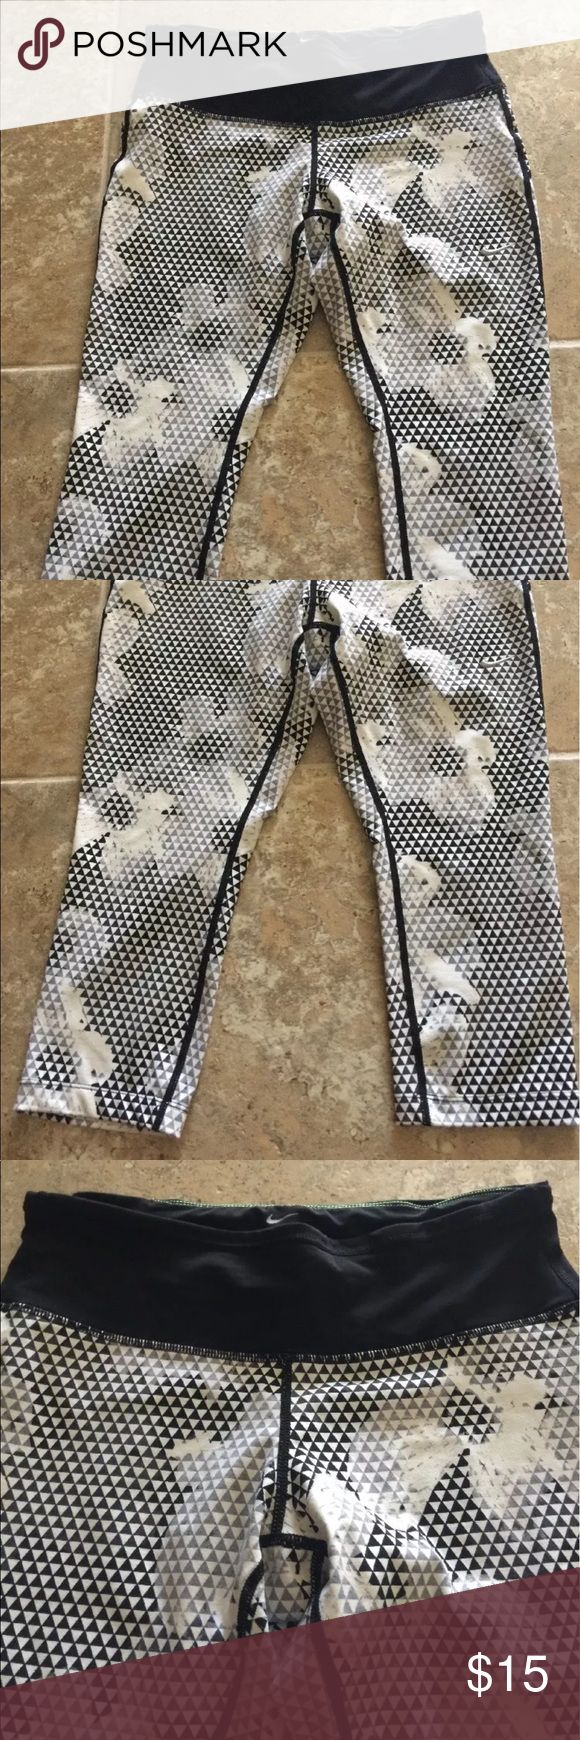 Ladies Nike Capri Legging Floral Black/white Sz M Gently used like new color black and white Nike capri. Cute floral print with zipper pocket on the back. Nike Pants Capris